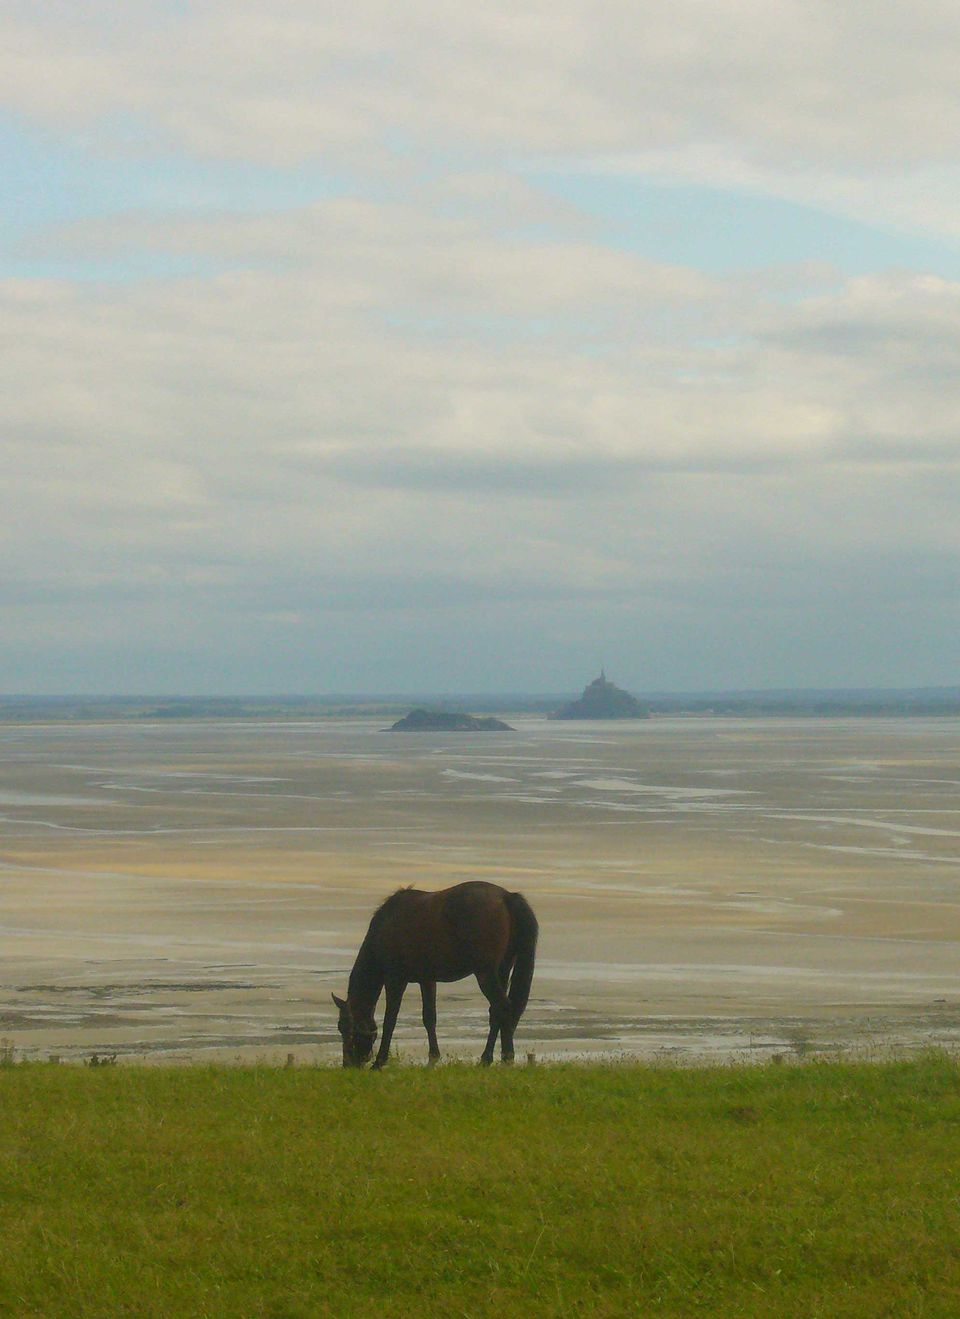 Mont St Michel in the far distance